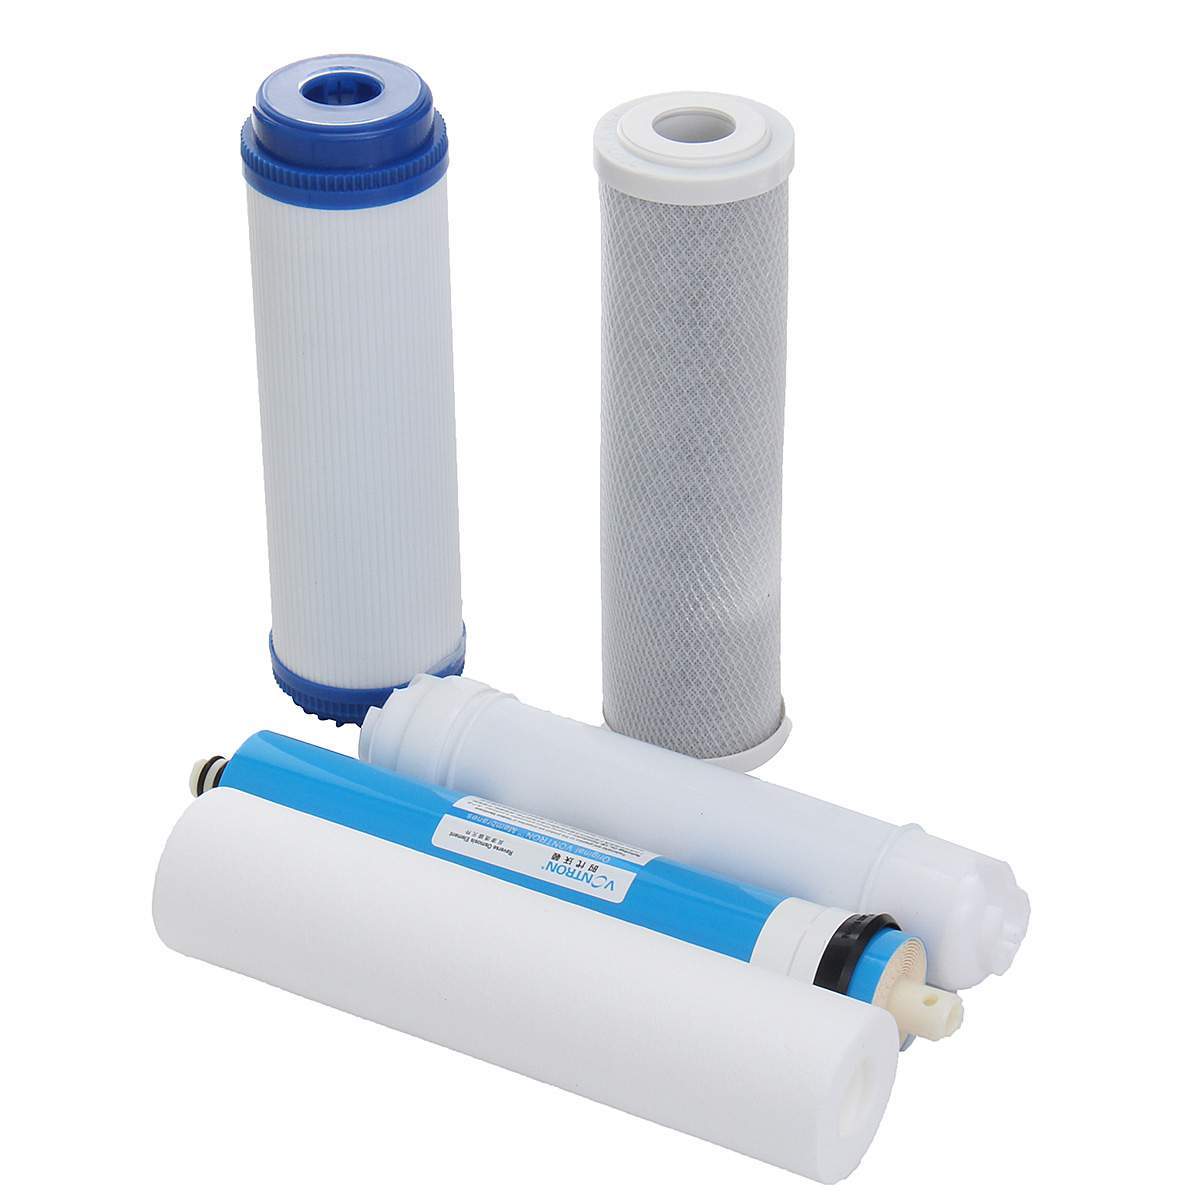 5 Stage Reverse Osmosis FULL Replacement Water Filter Kit with 50 GPD Membrane Home Applicance Part